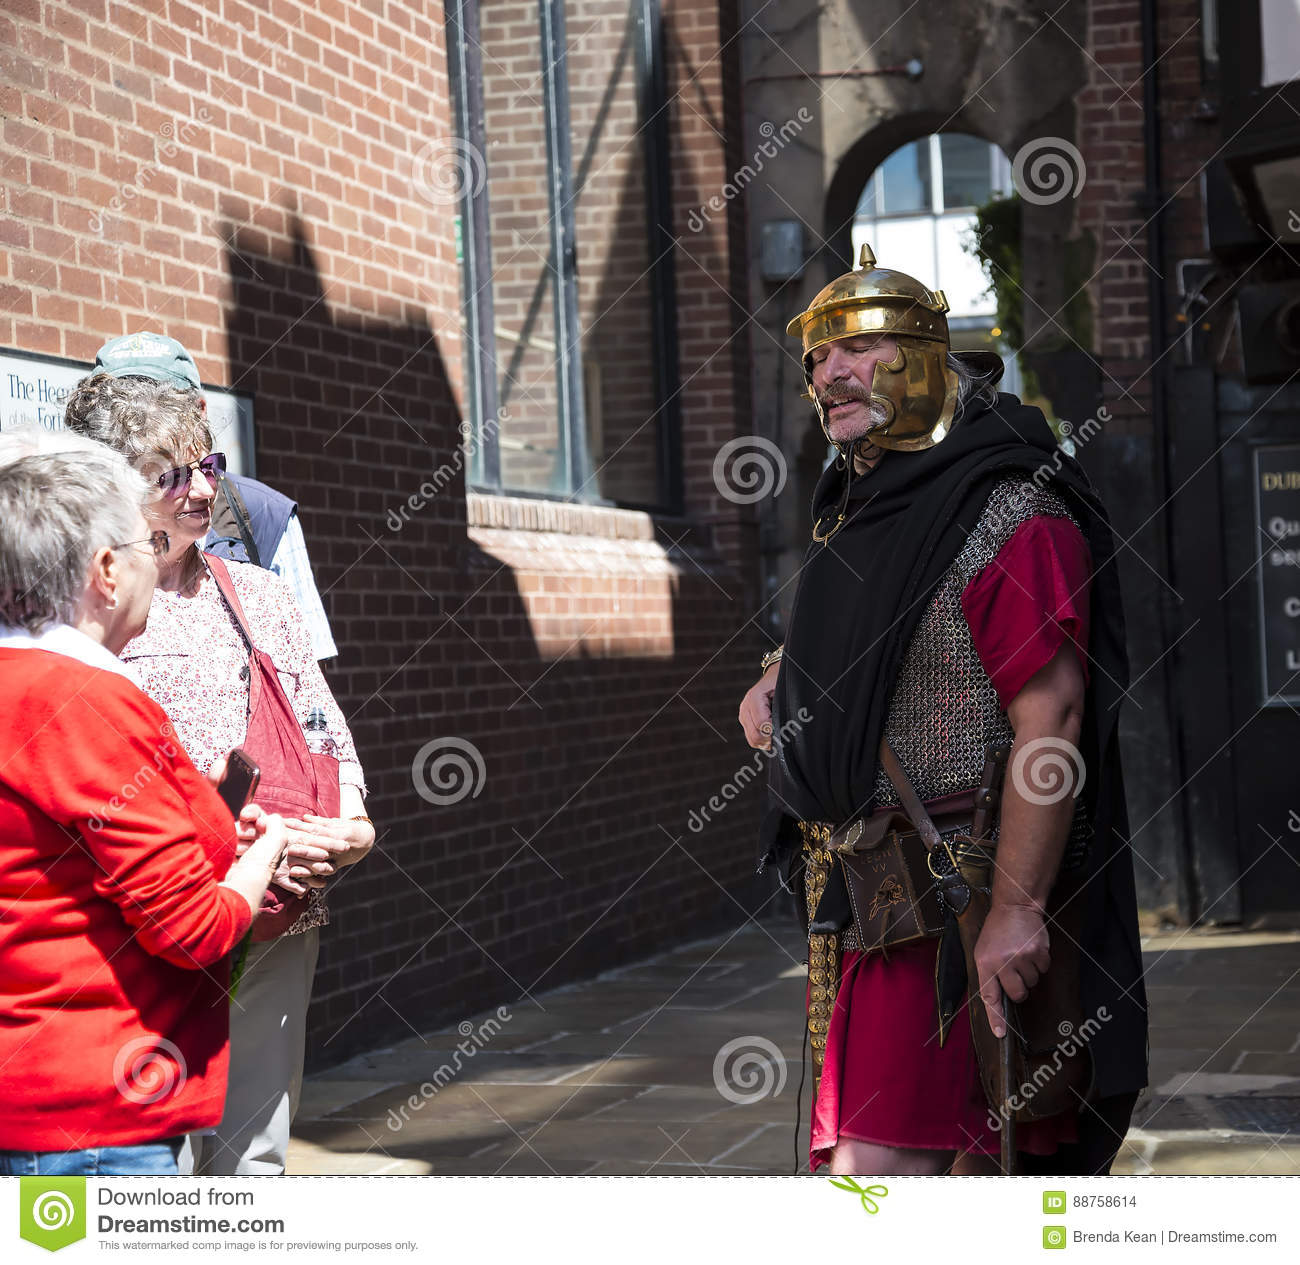 Tour Guide as Roman Soldier in Chester the county city of Cheshire in England